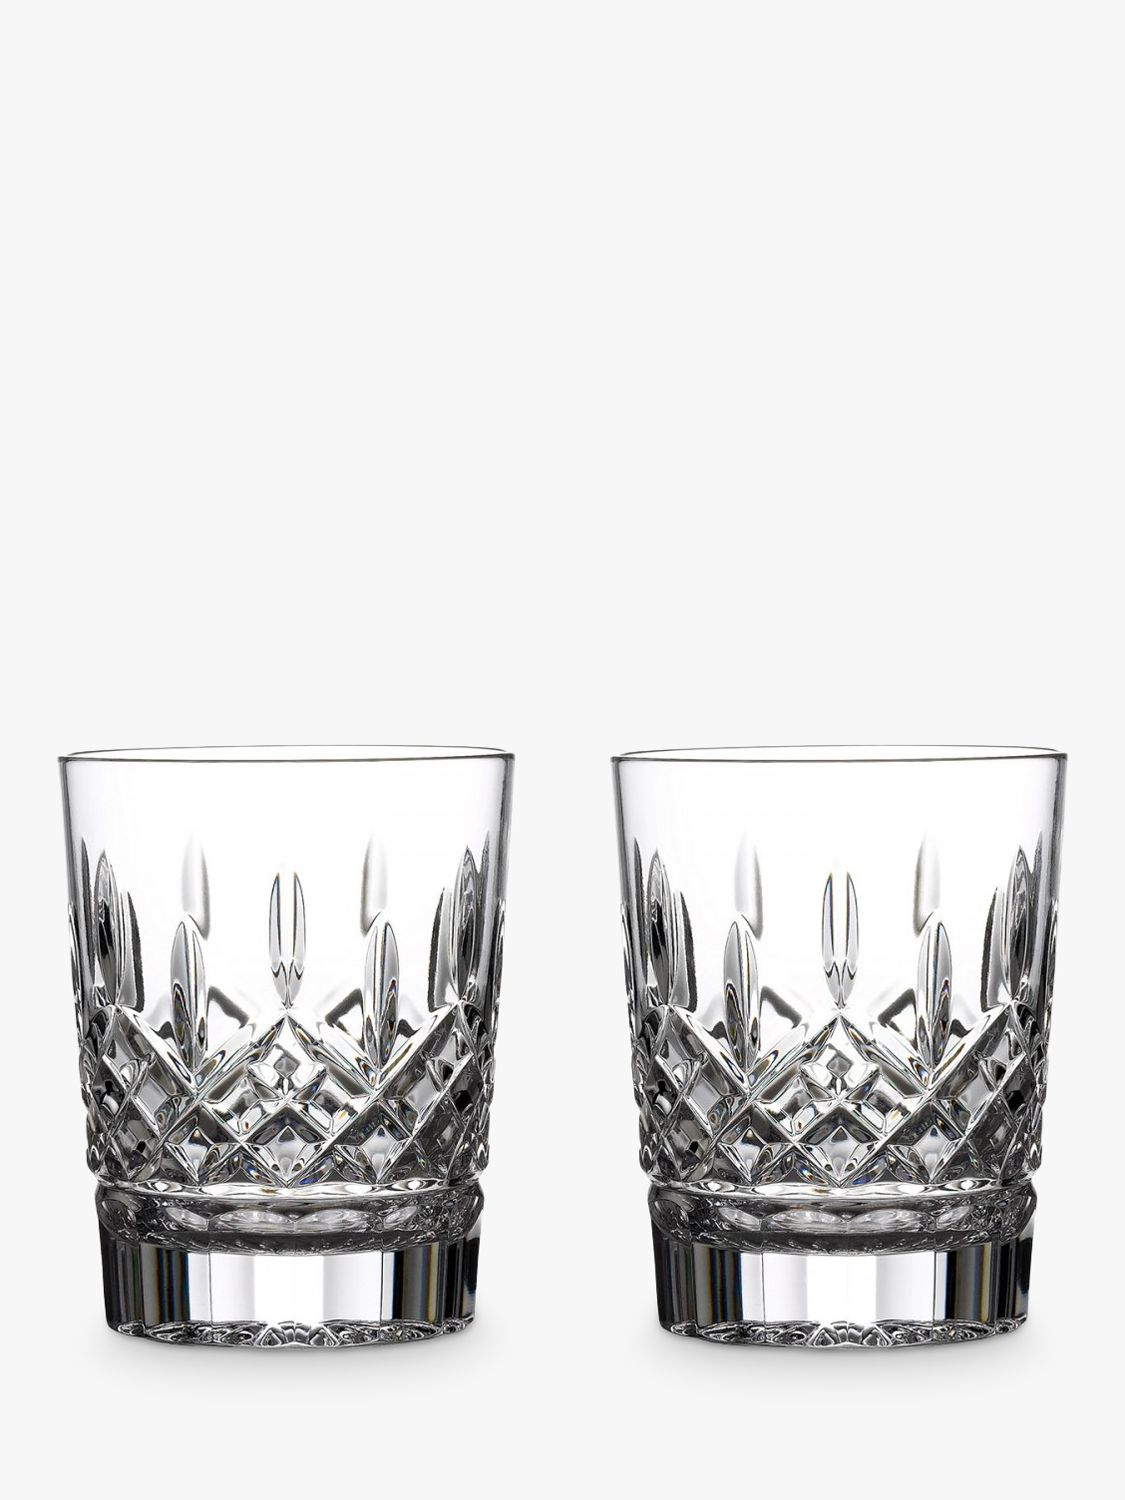 Waterford Waterford Crystal Lismore Double Old Fashioned Cut Lead Crystal Tumblers, Set of 2, 350ml